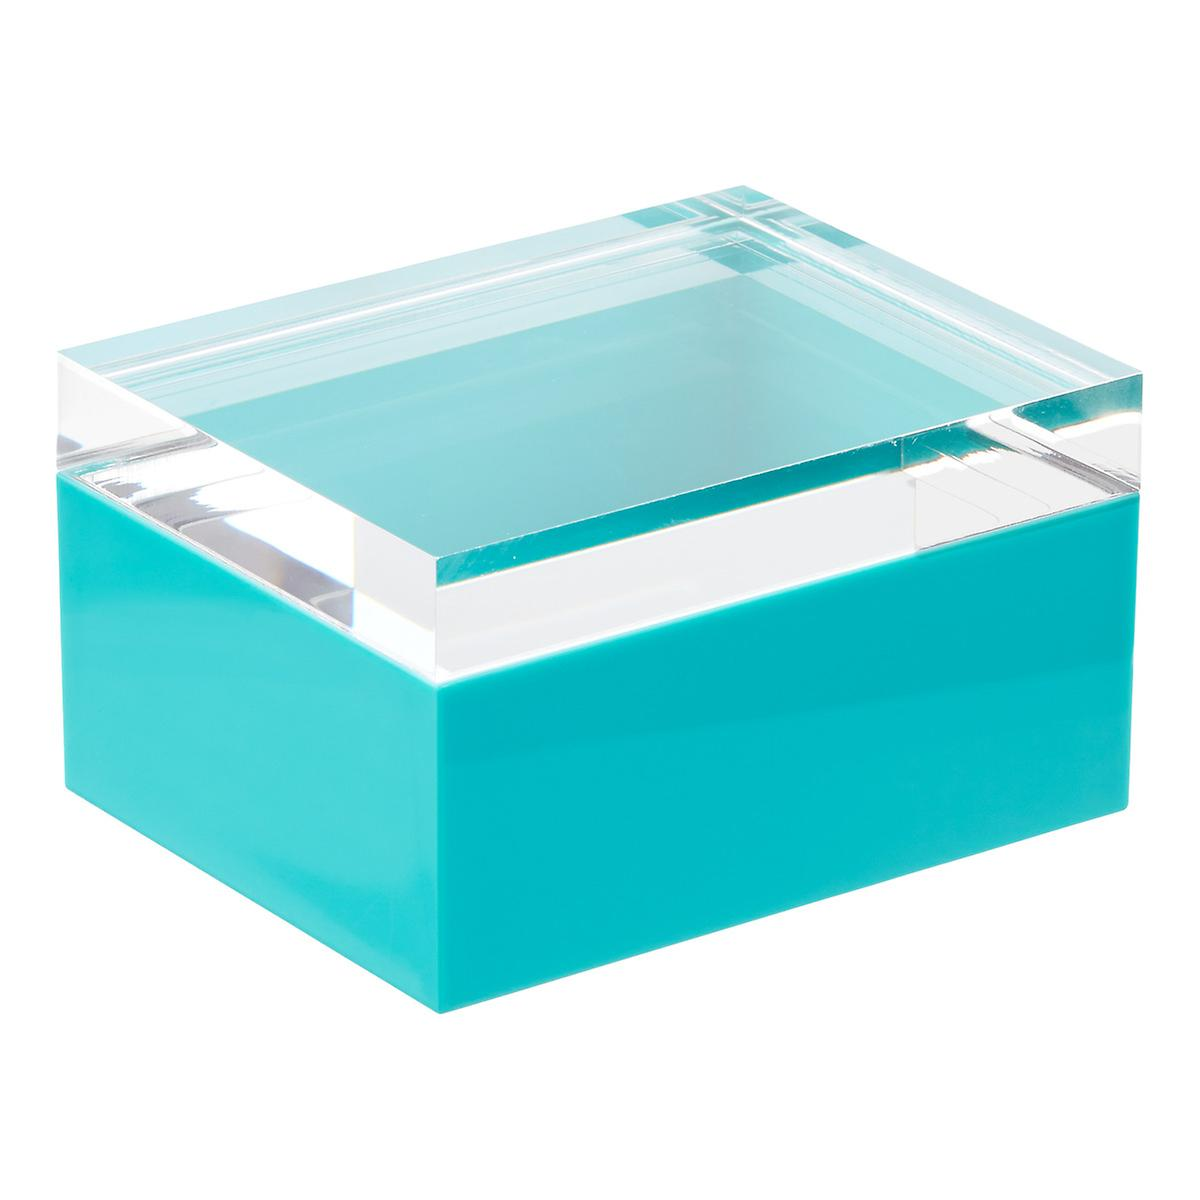 Acrylic Box Lid : Acrylic lid boxes the container store